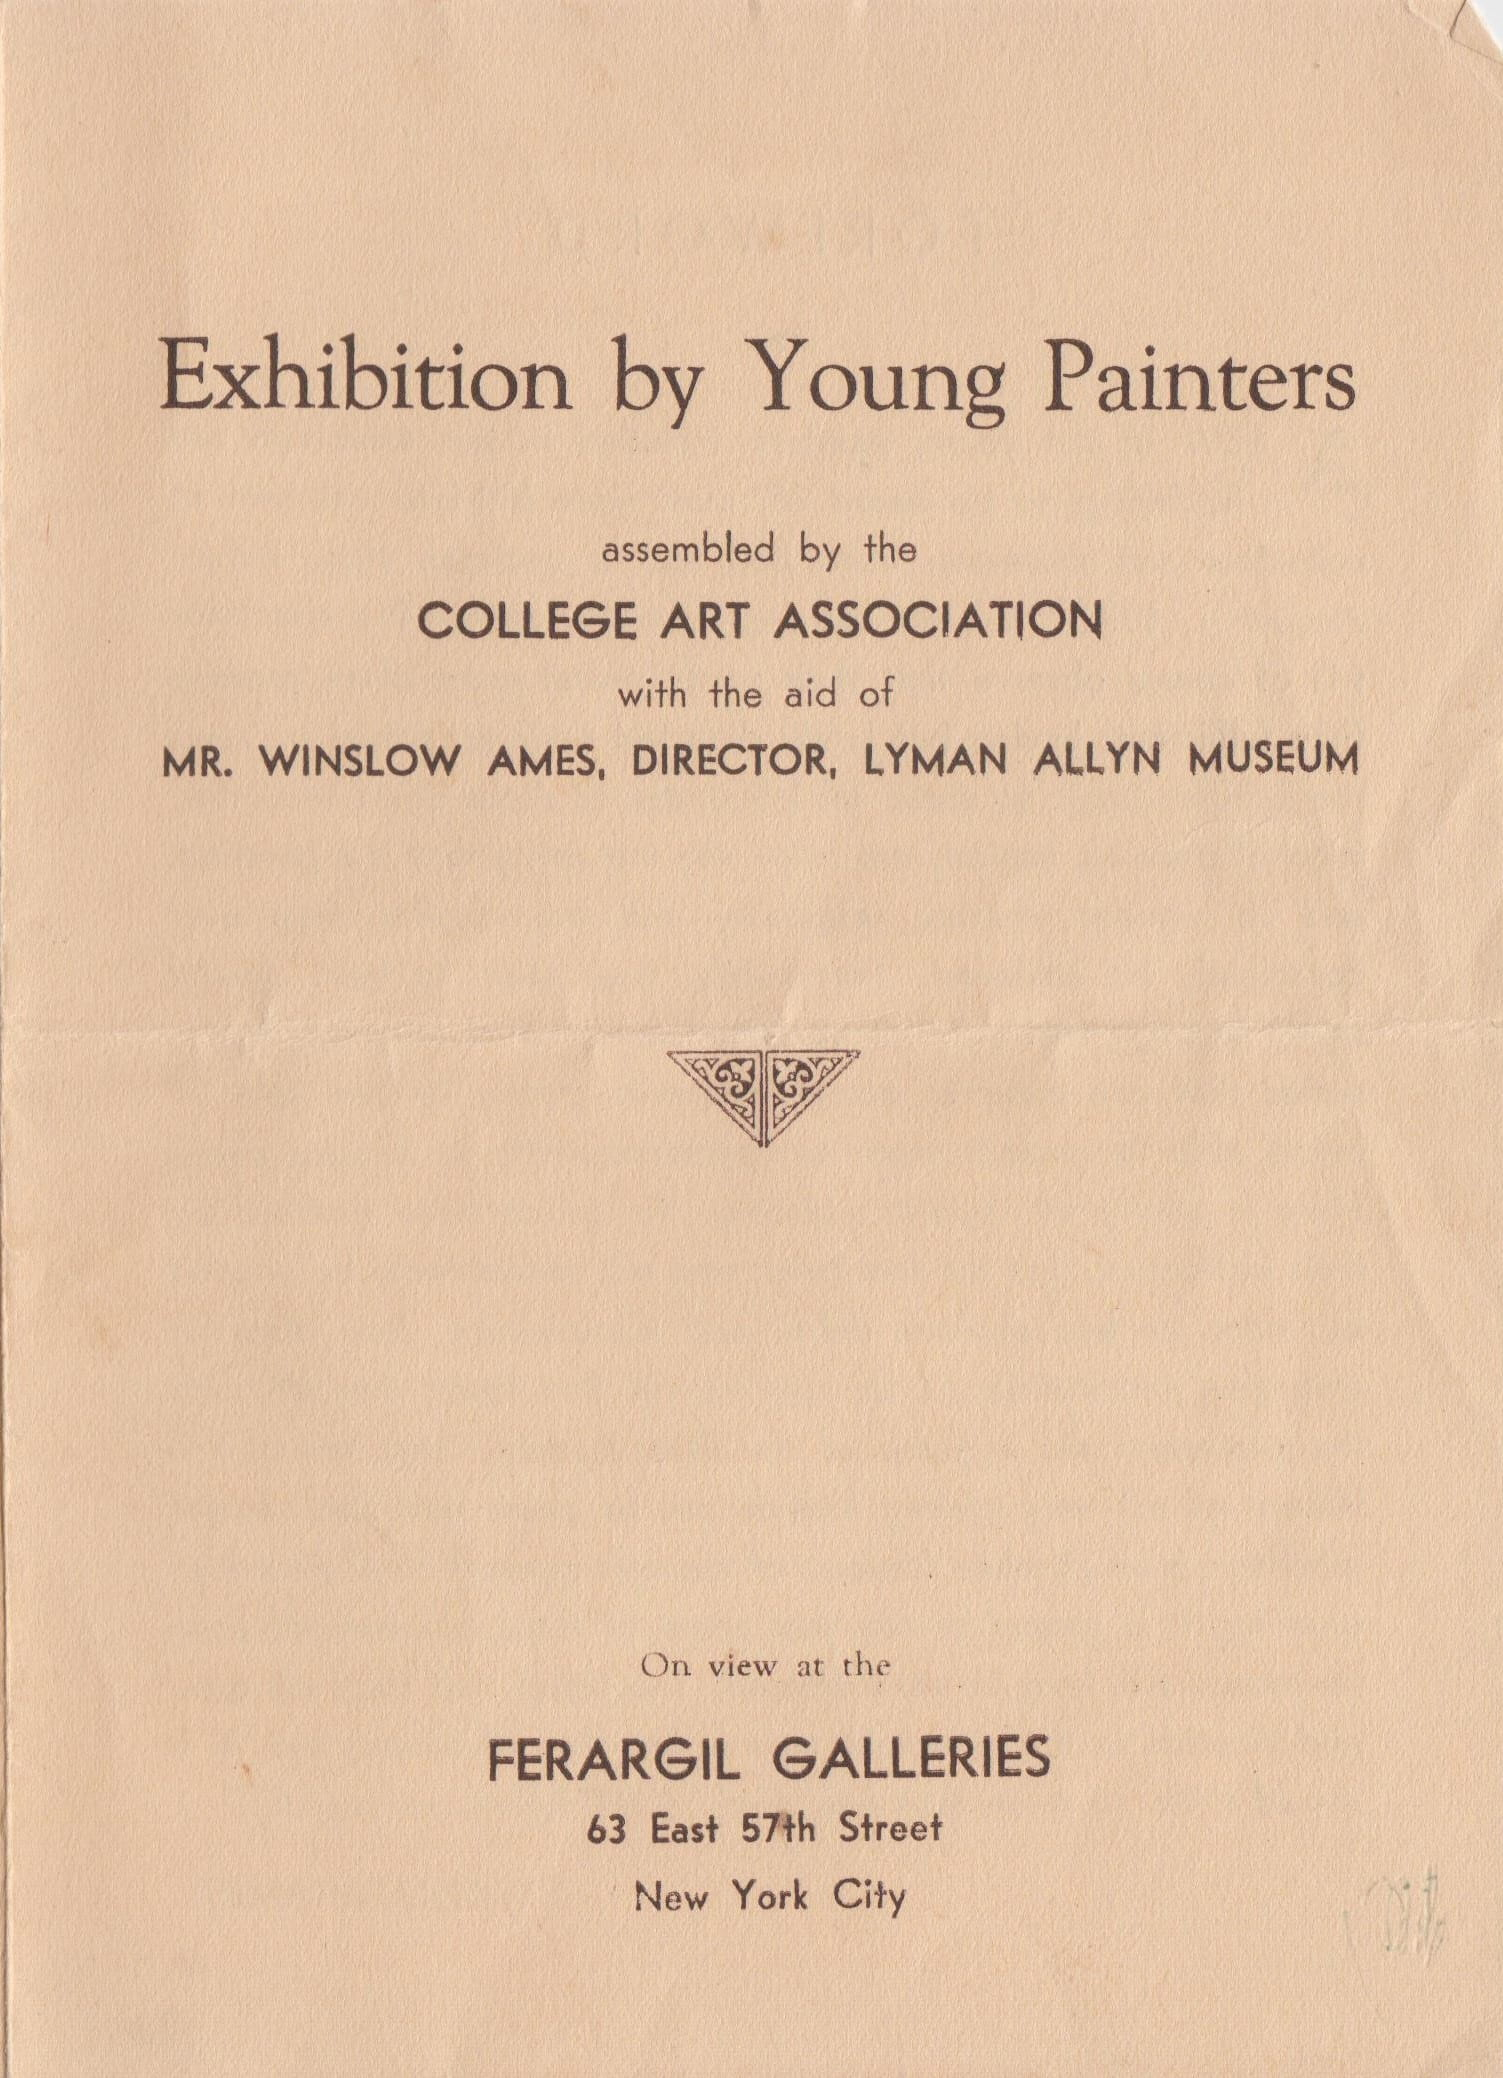 Discovery in the Bywaters' Archive: 1932 Exhibition by Young Painters